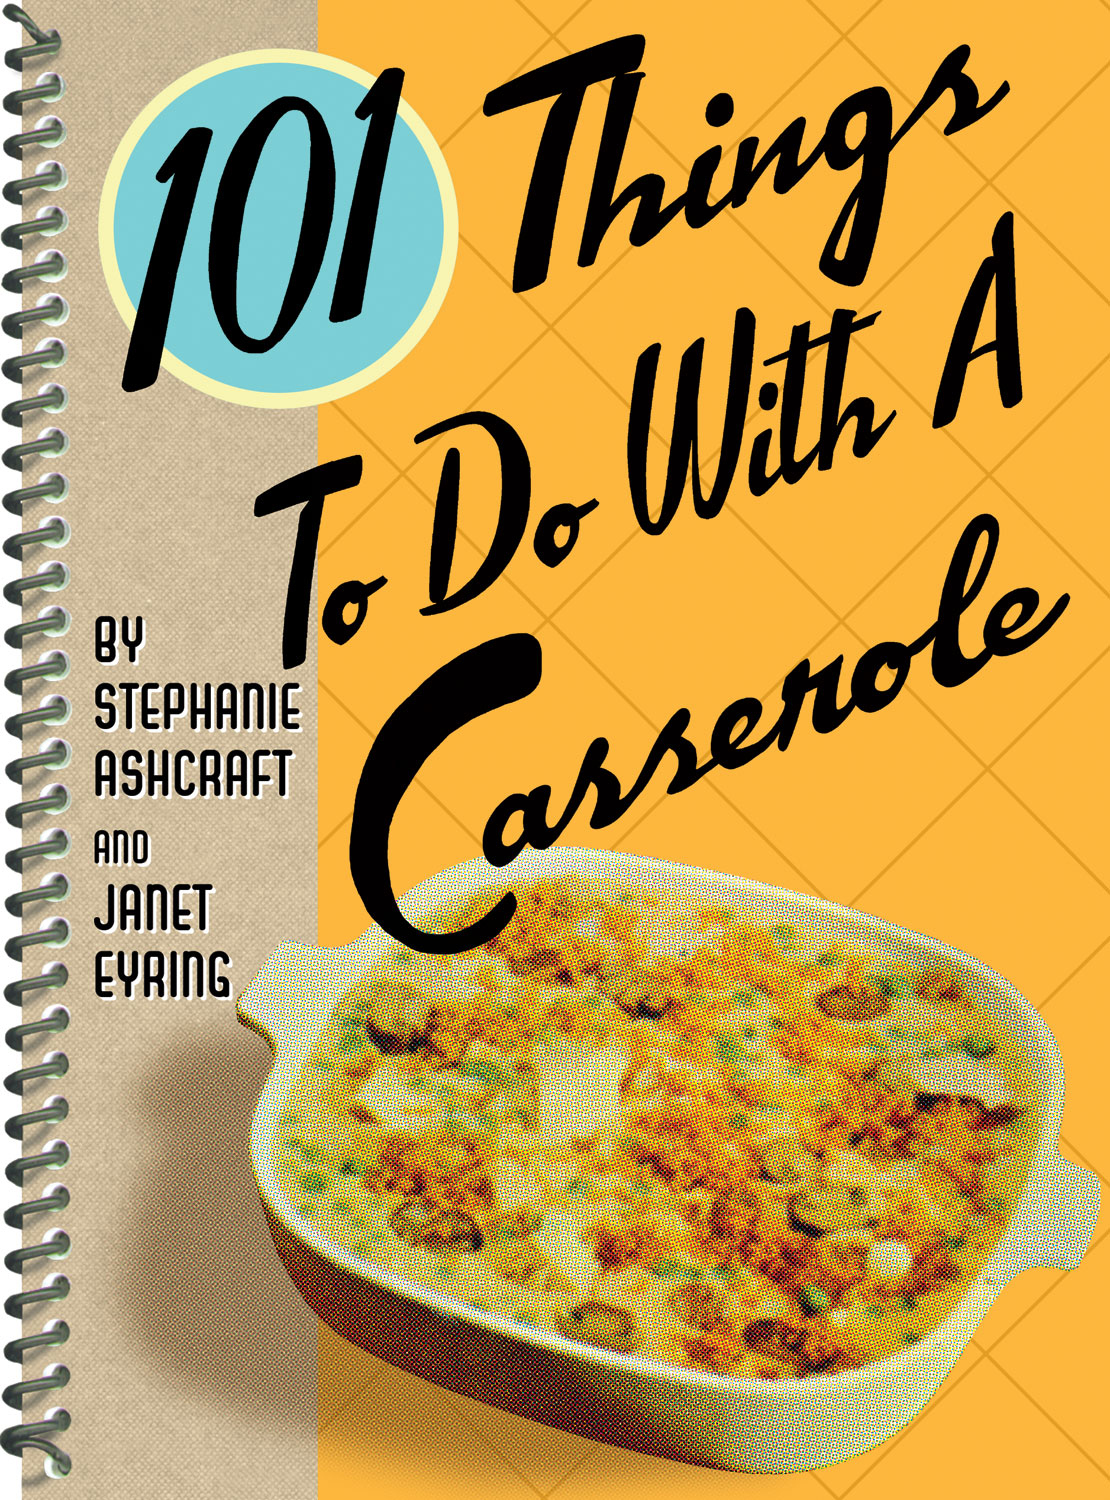 101 Things to Do with a Casserole By: Stephanie Ashcraft